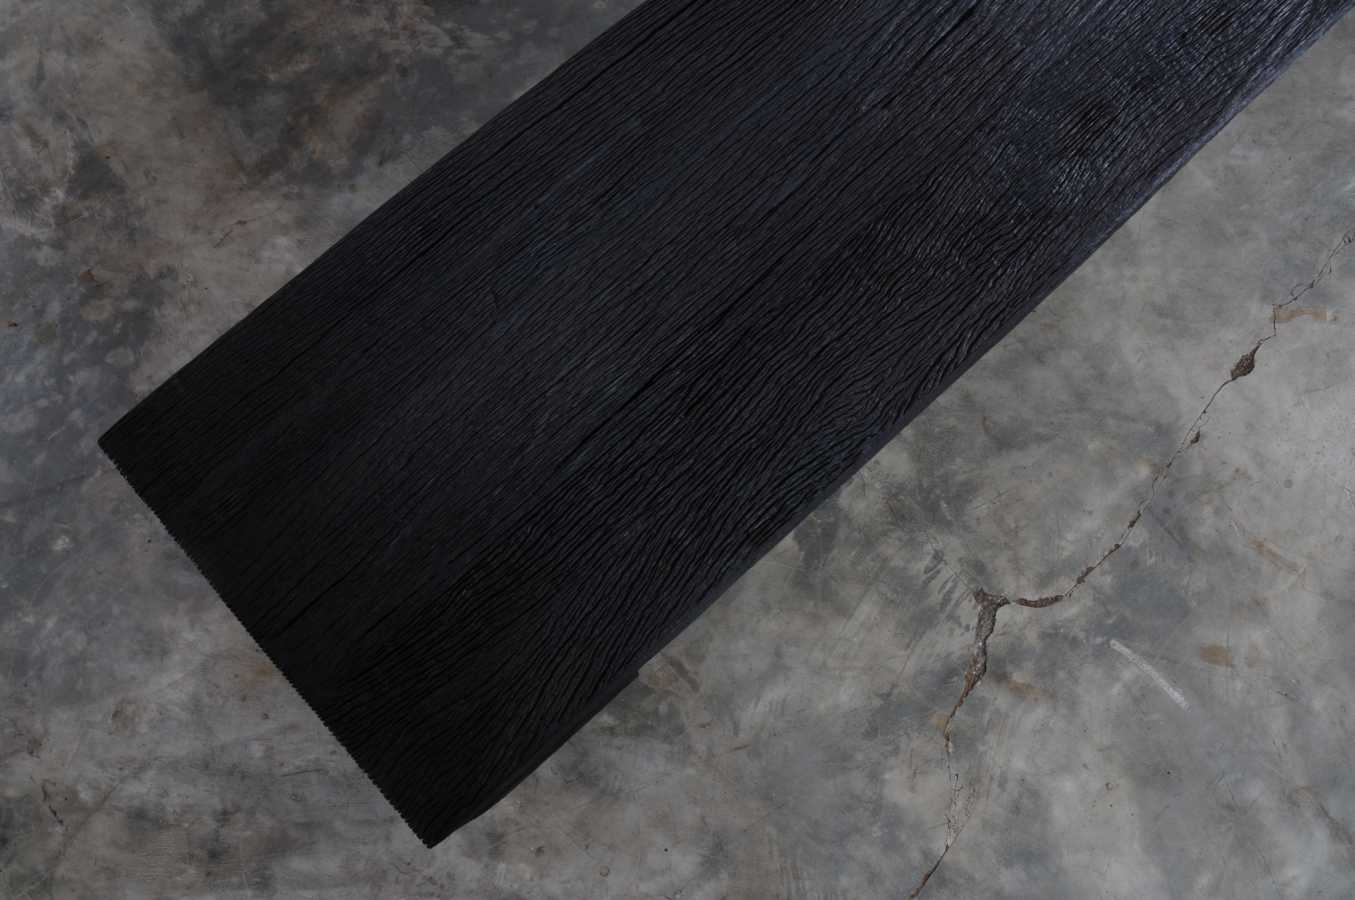 KALIMANTAN COLLECTION ERODED IRON WOOD BENCH 2 - 220x40x42cm 87x16x17' Custom size on request